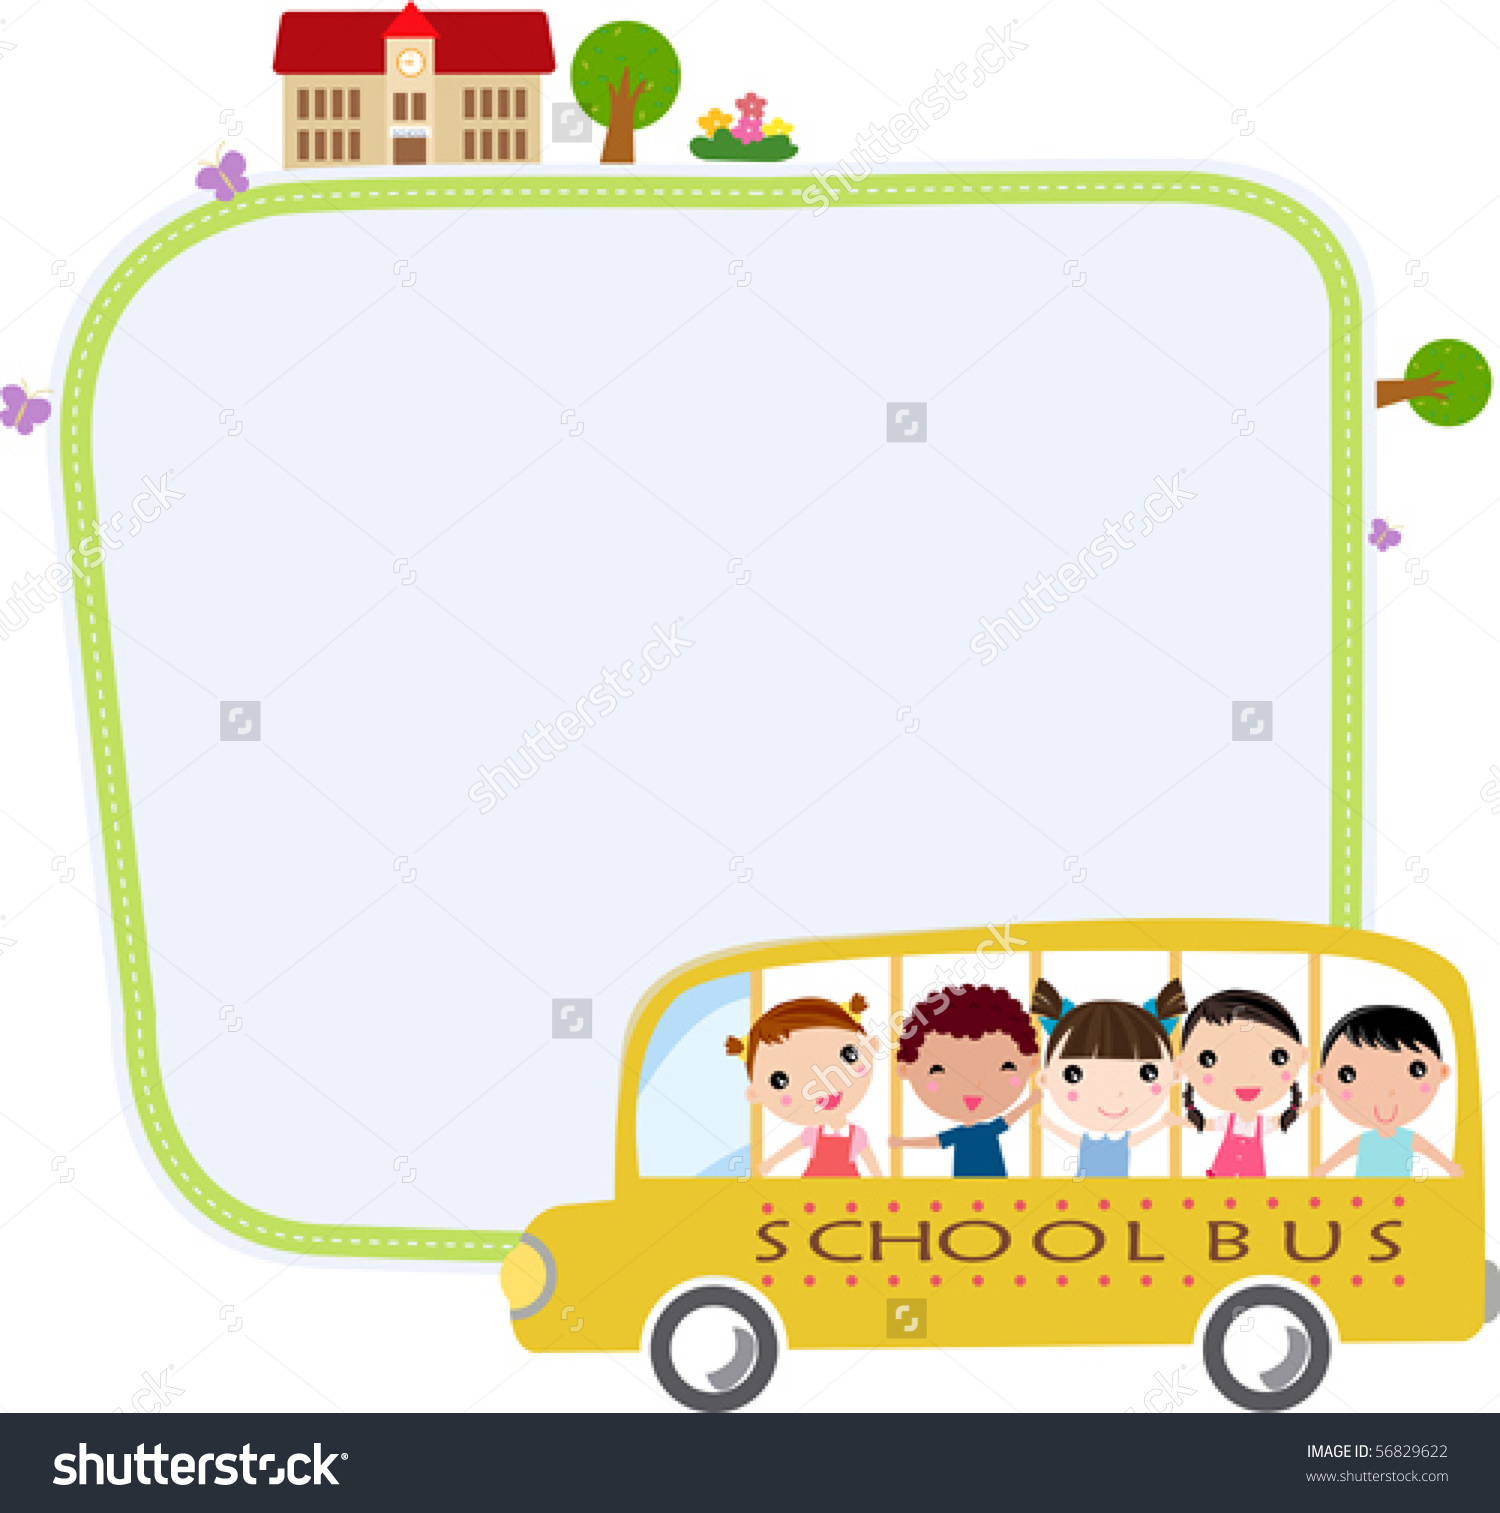 school bus borders clipart clipground Buses Clip Art Black and White School Bus Silhouette